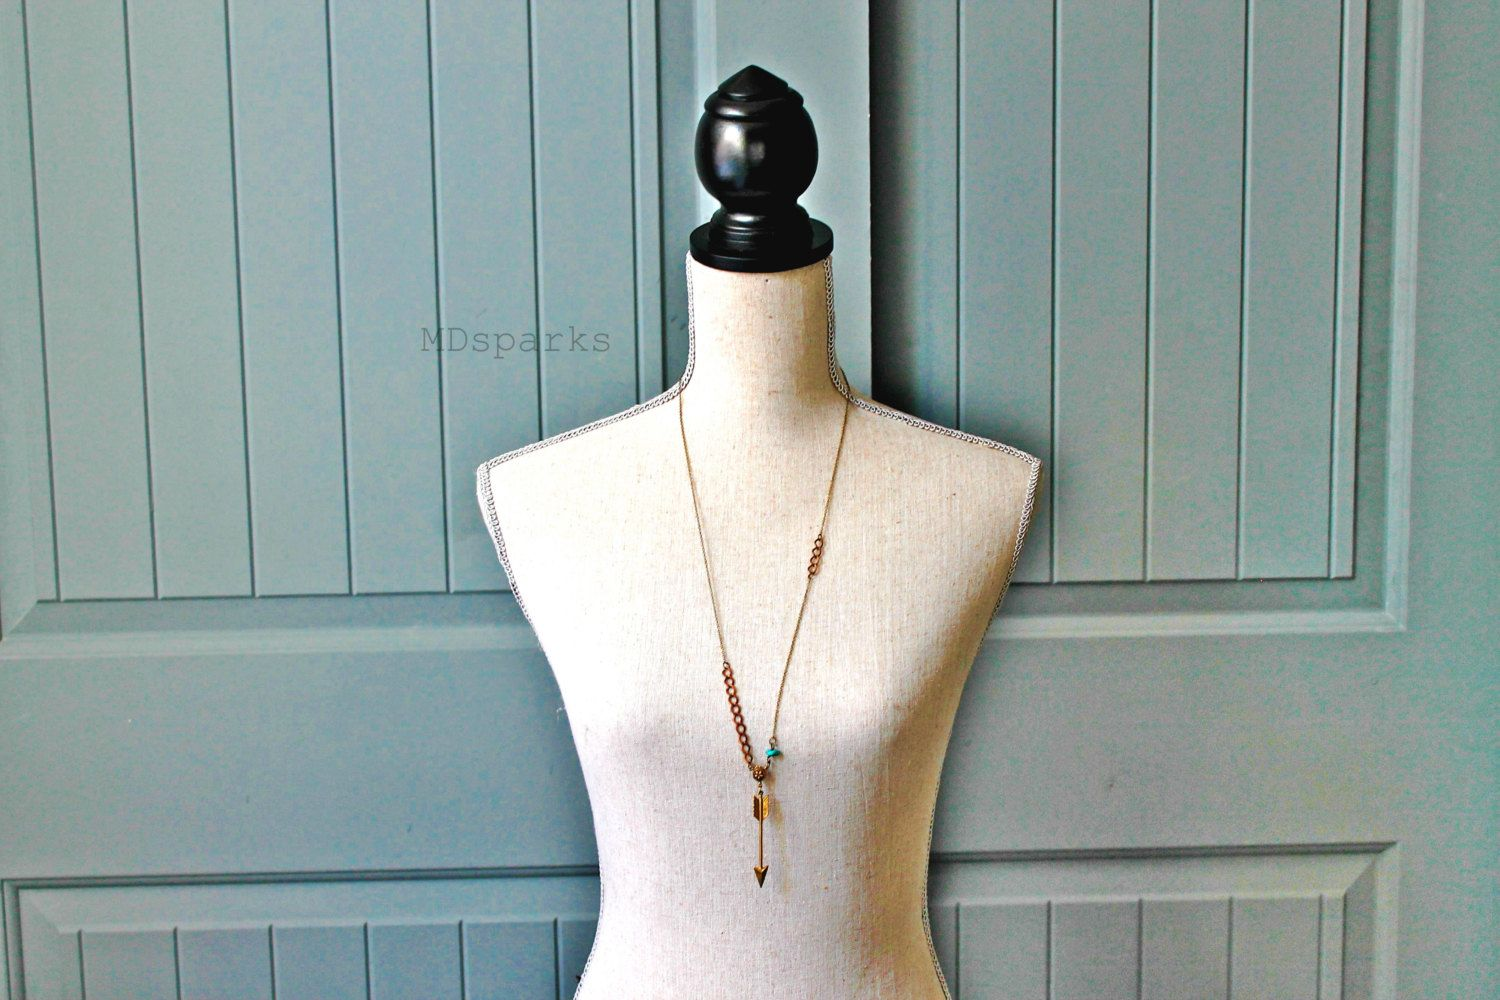 Long Arrow Necklace by MDsparks on Etsy